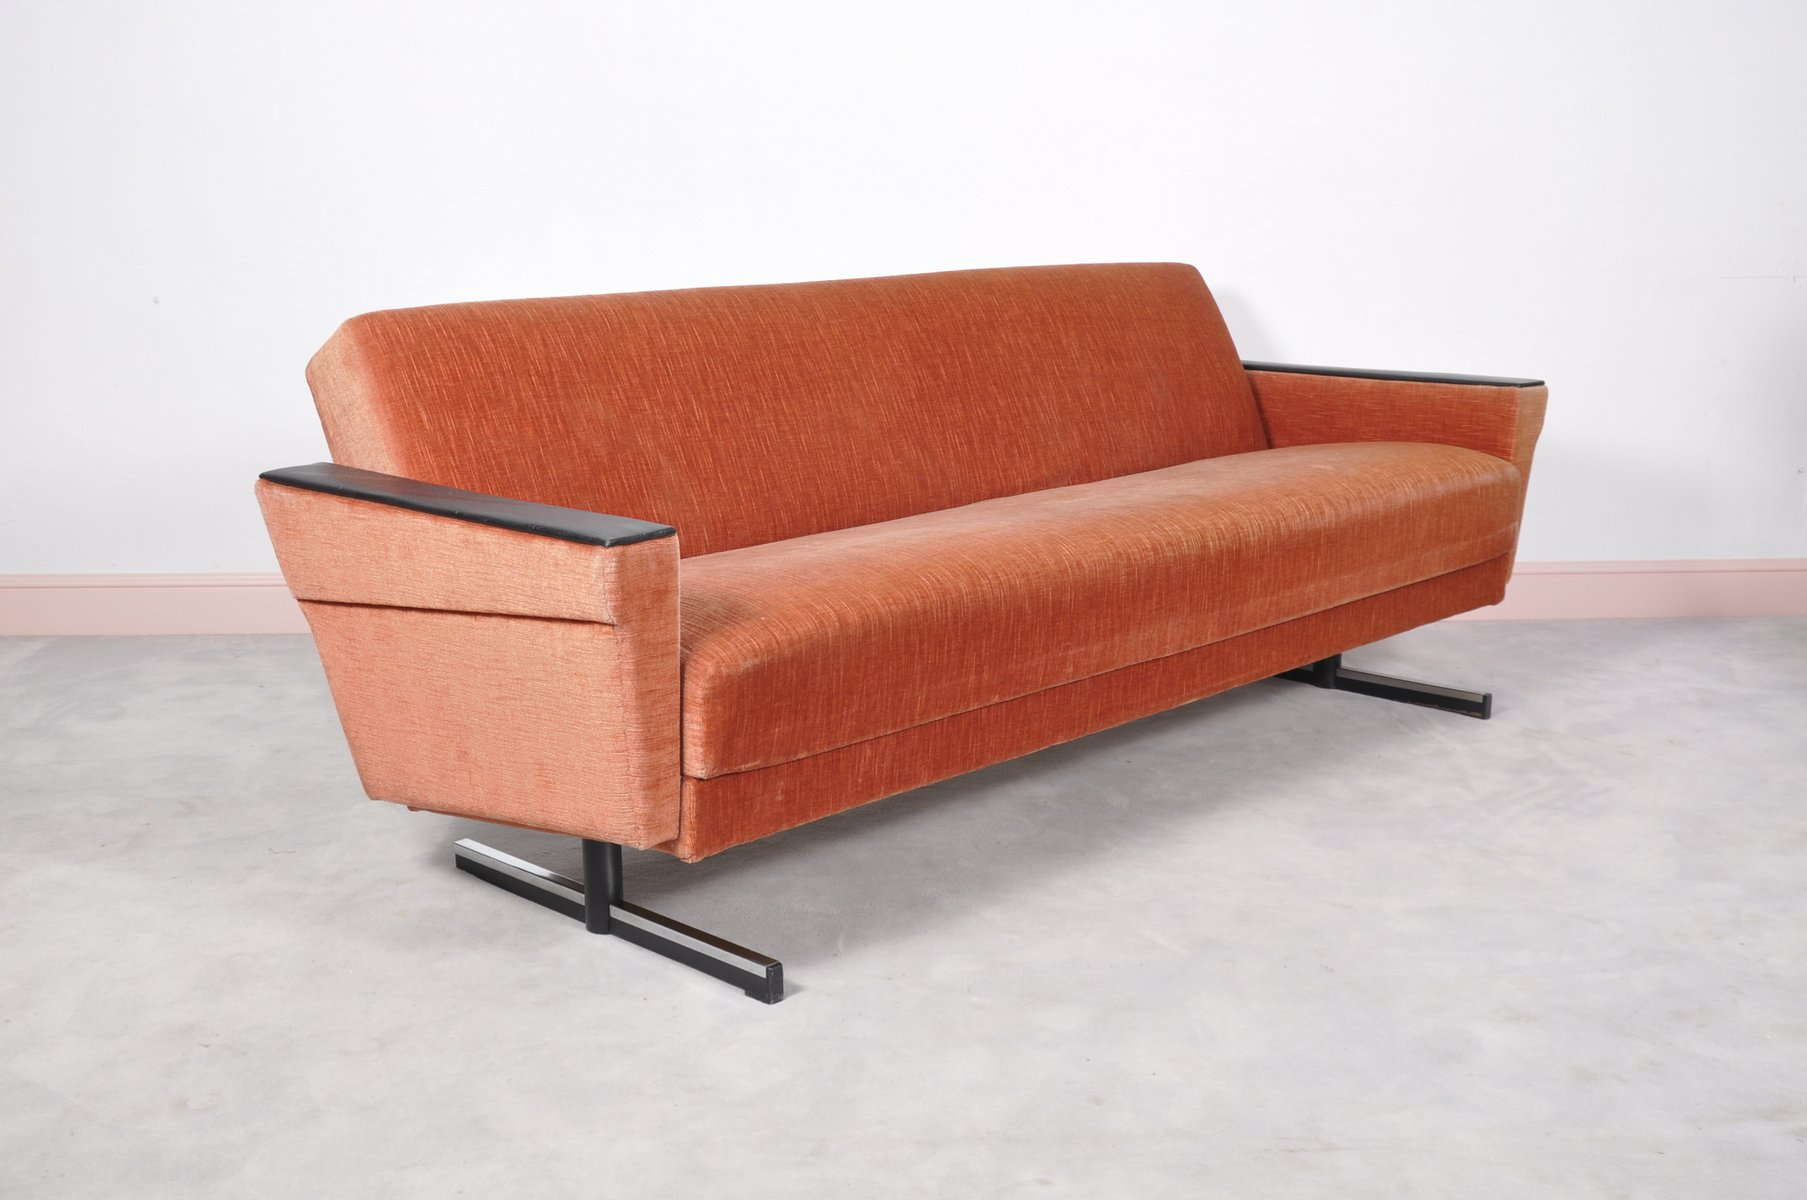 Mid Century Modern Daybed Sofa With Shaker Legs For Sale